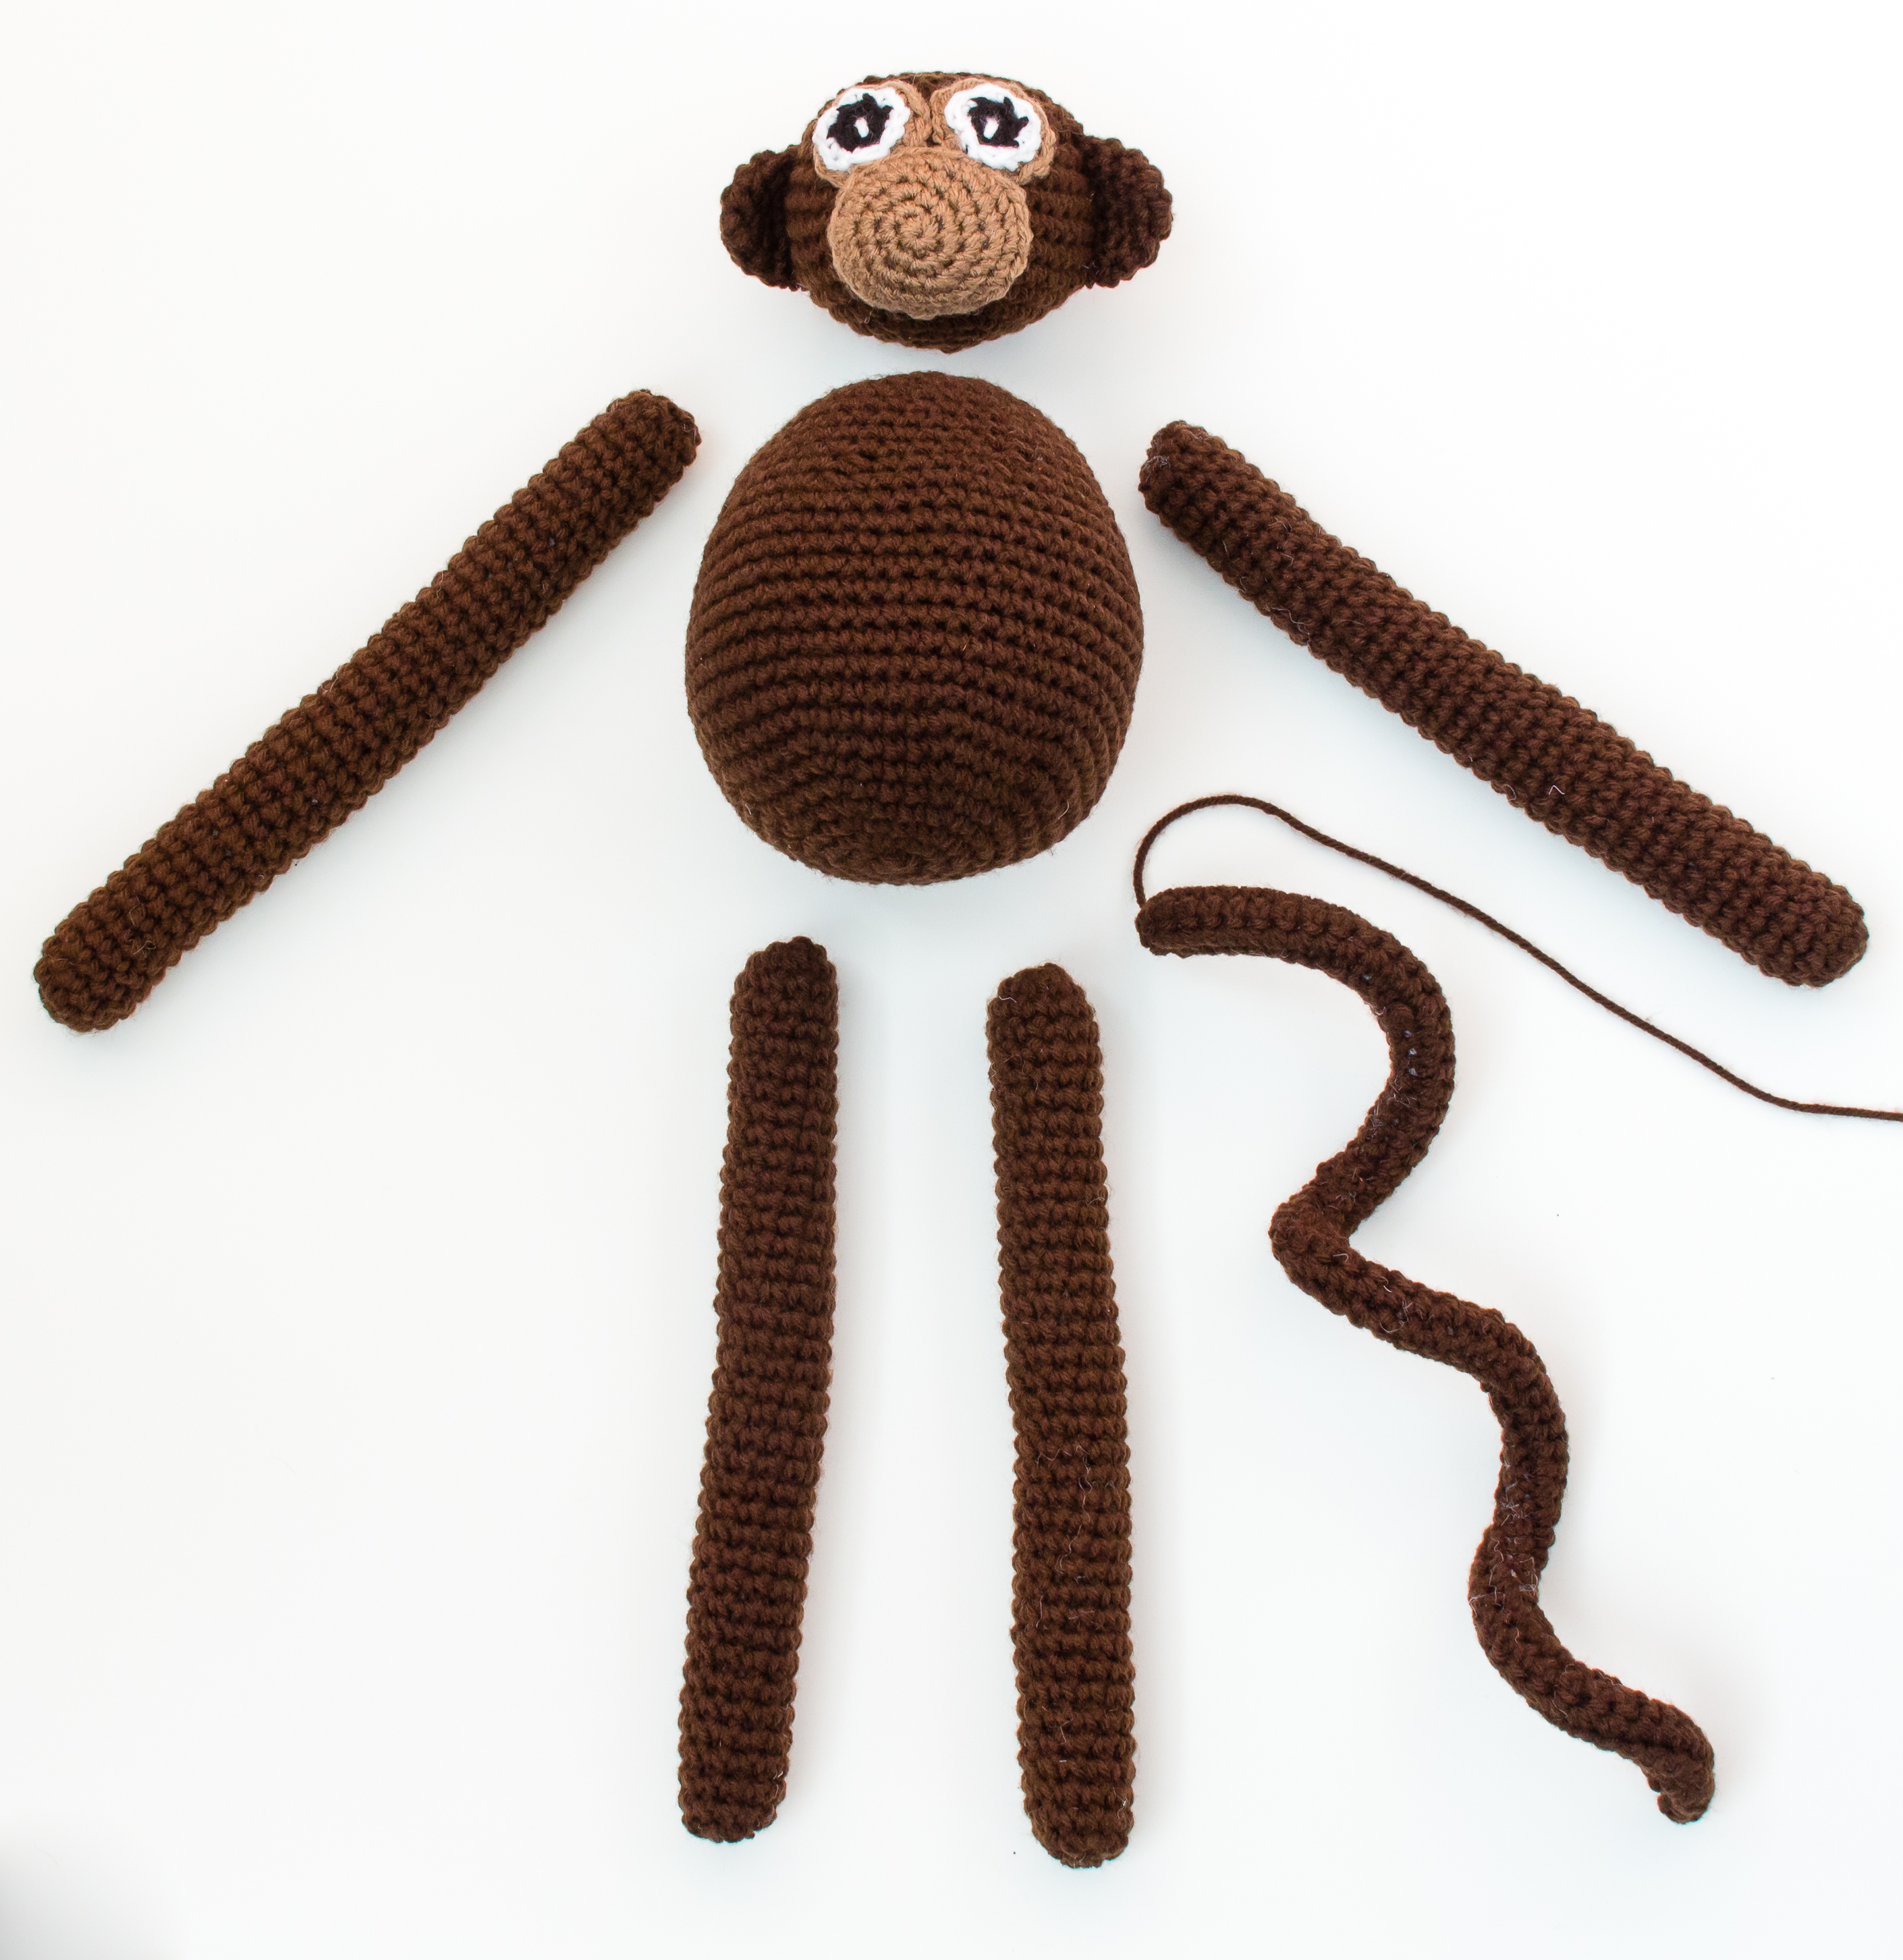 New Crochet Pattern: Monkey Business | KNITS FOR LIFE